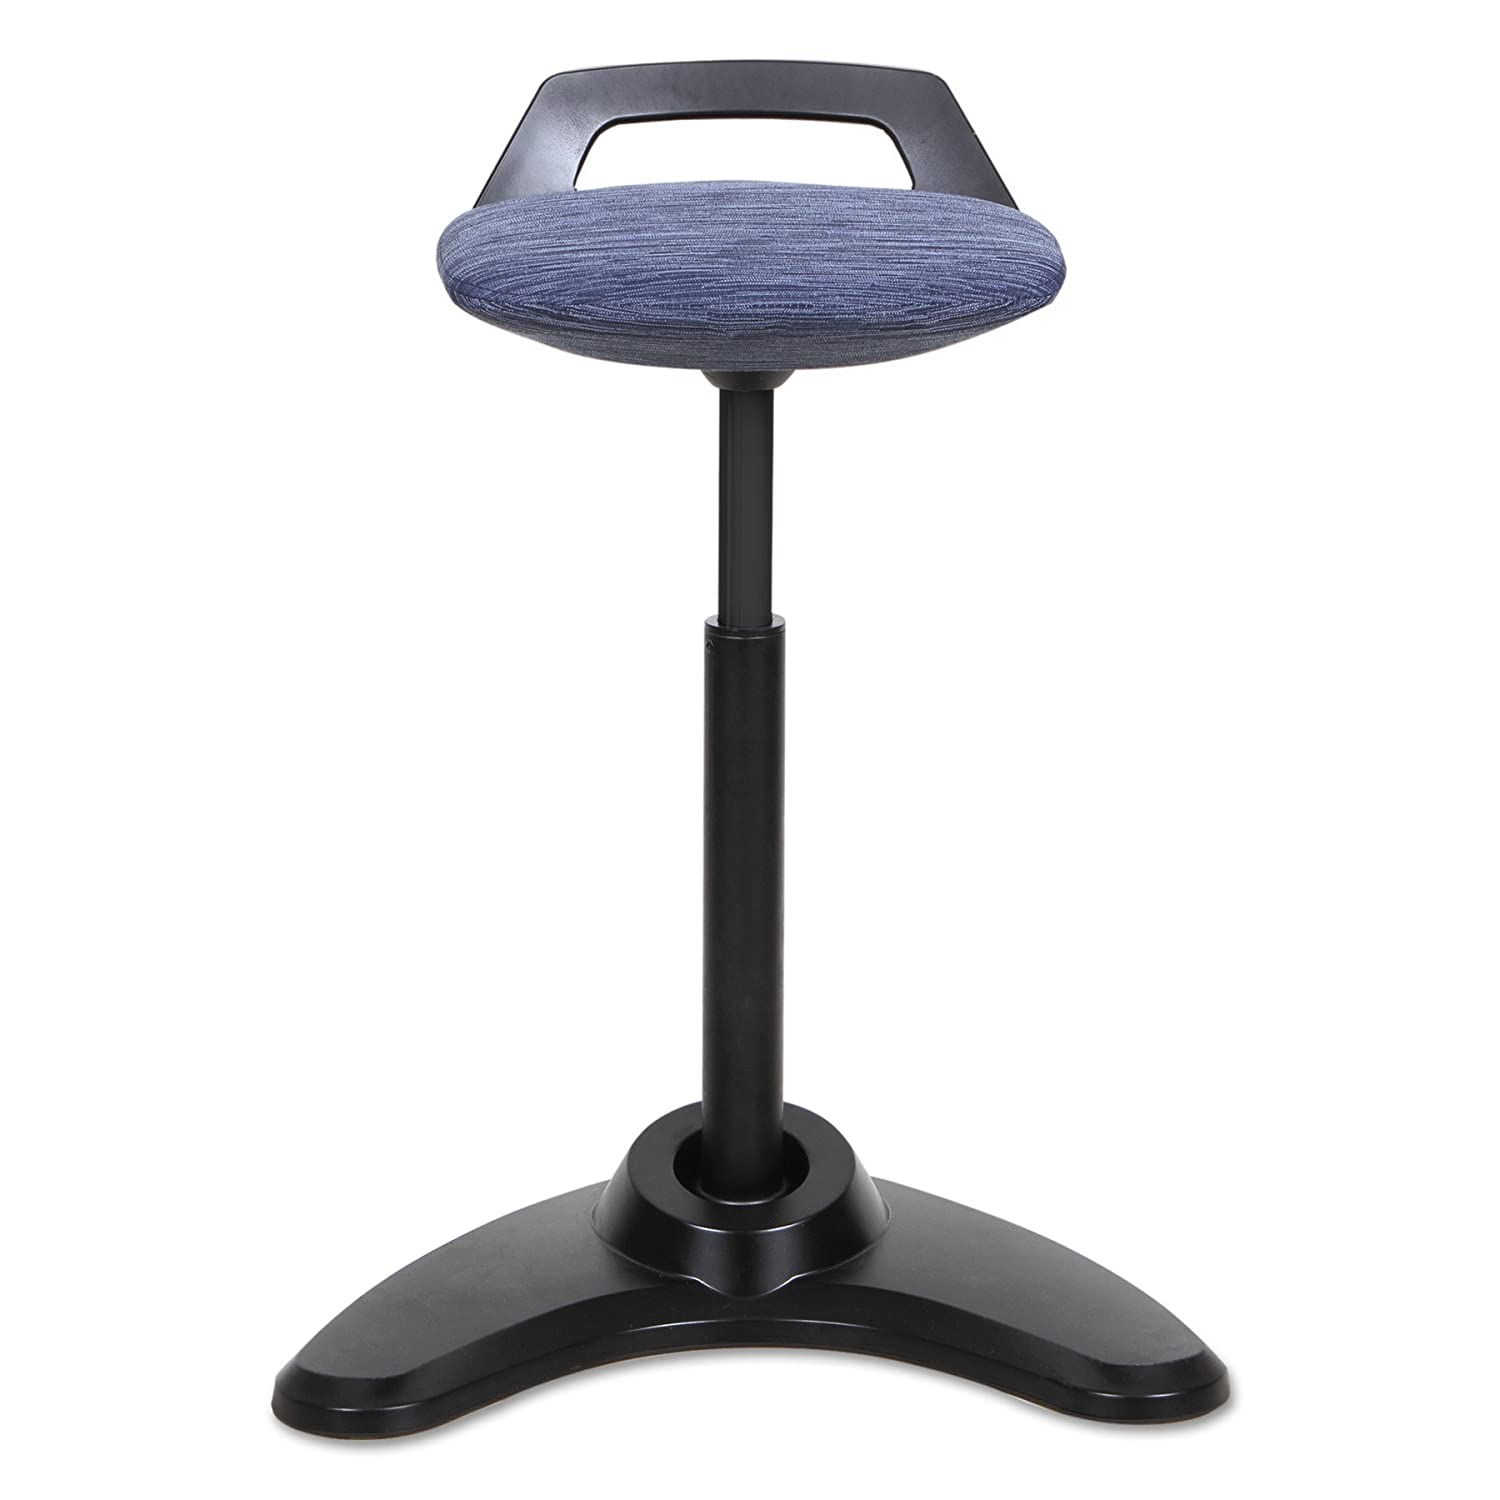 Amazon.com: Alera Sit to Stand Perch - Taburete, Plástico ...